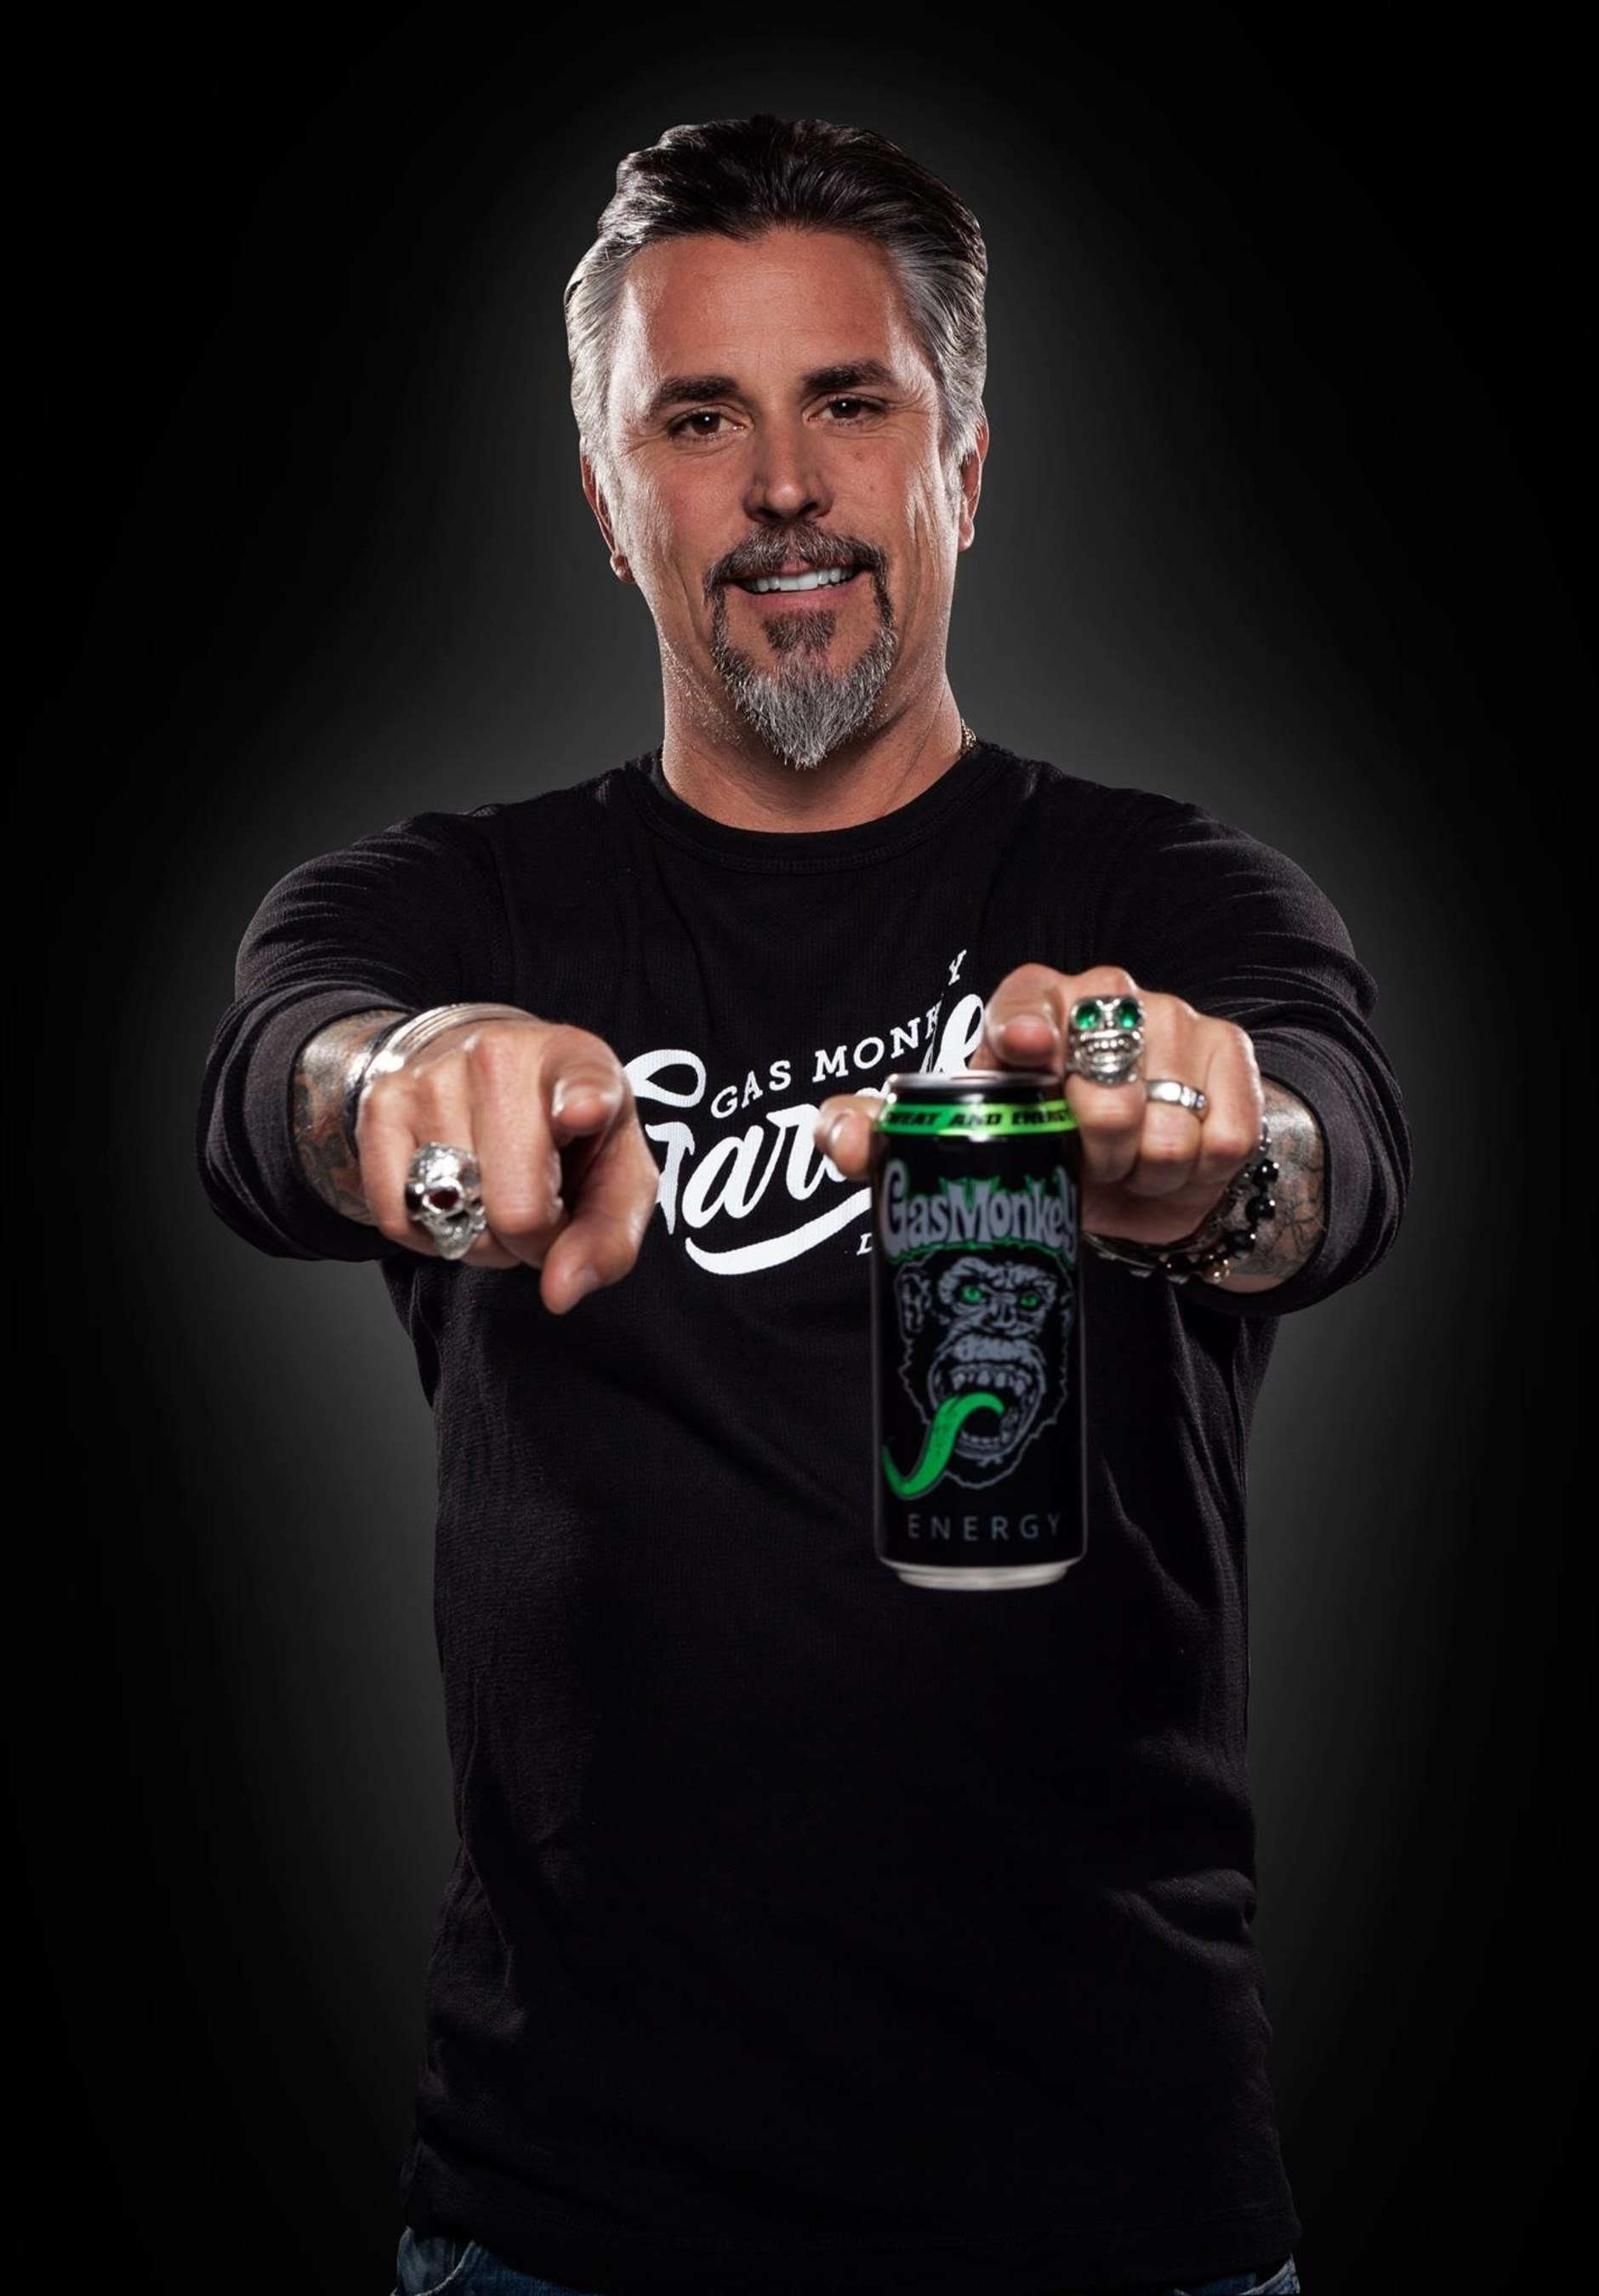 Dallas Automotive Mastermind Richard Rawlings to Co-Chair New Energy Drink Company